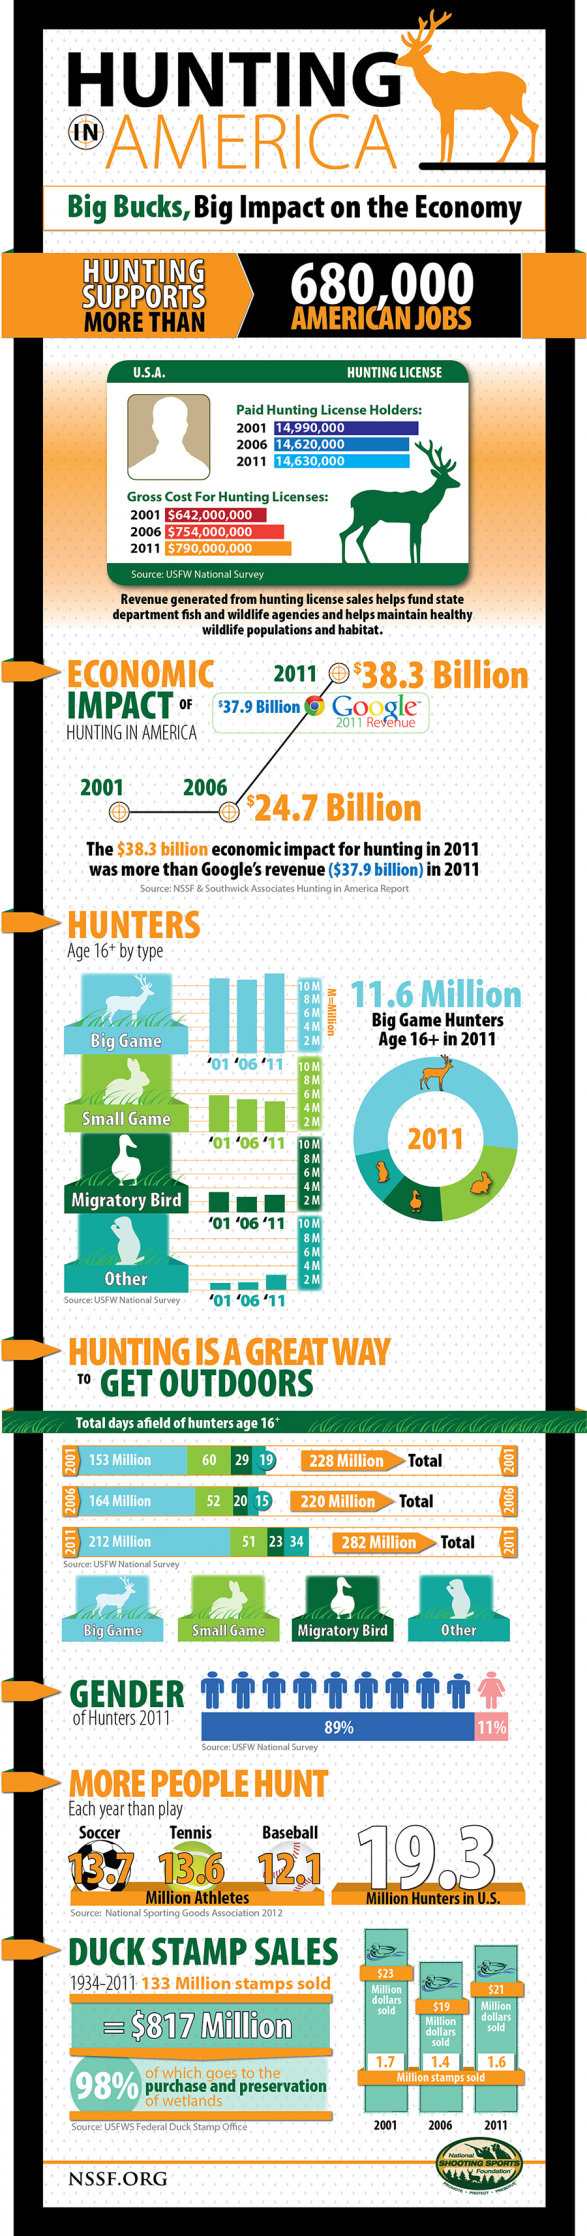 Hunting In America: Big Bucks, Big Impact on the Economy